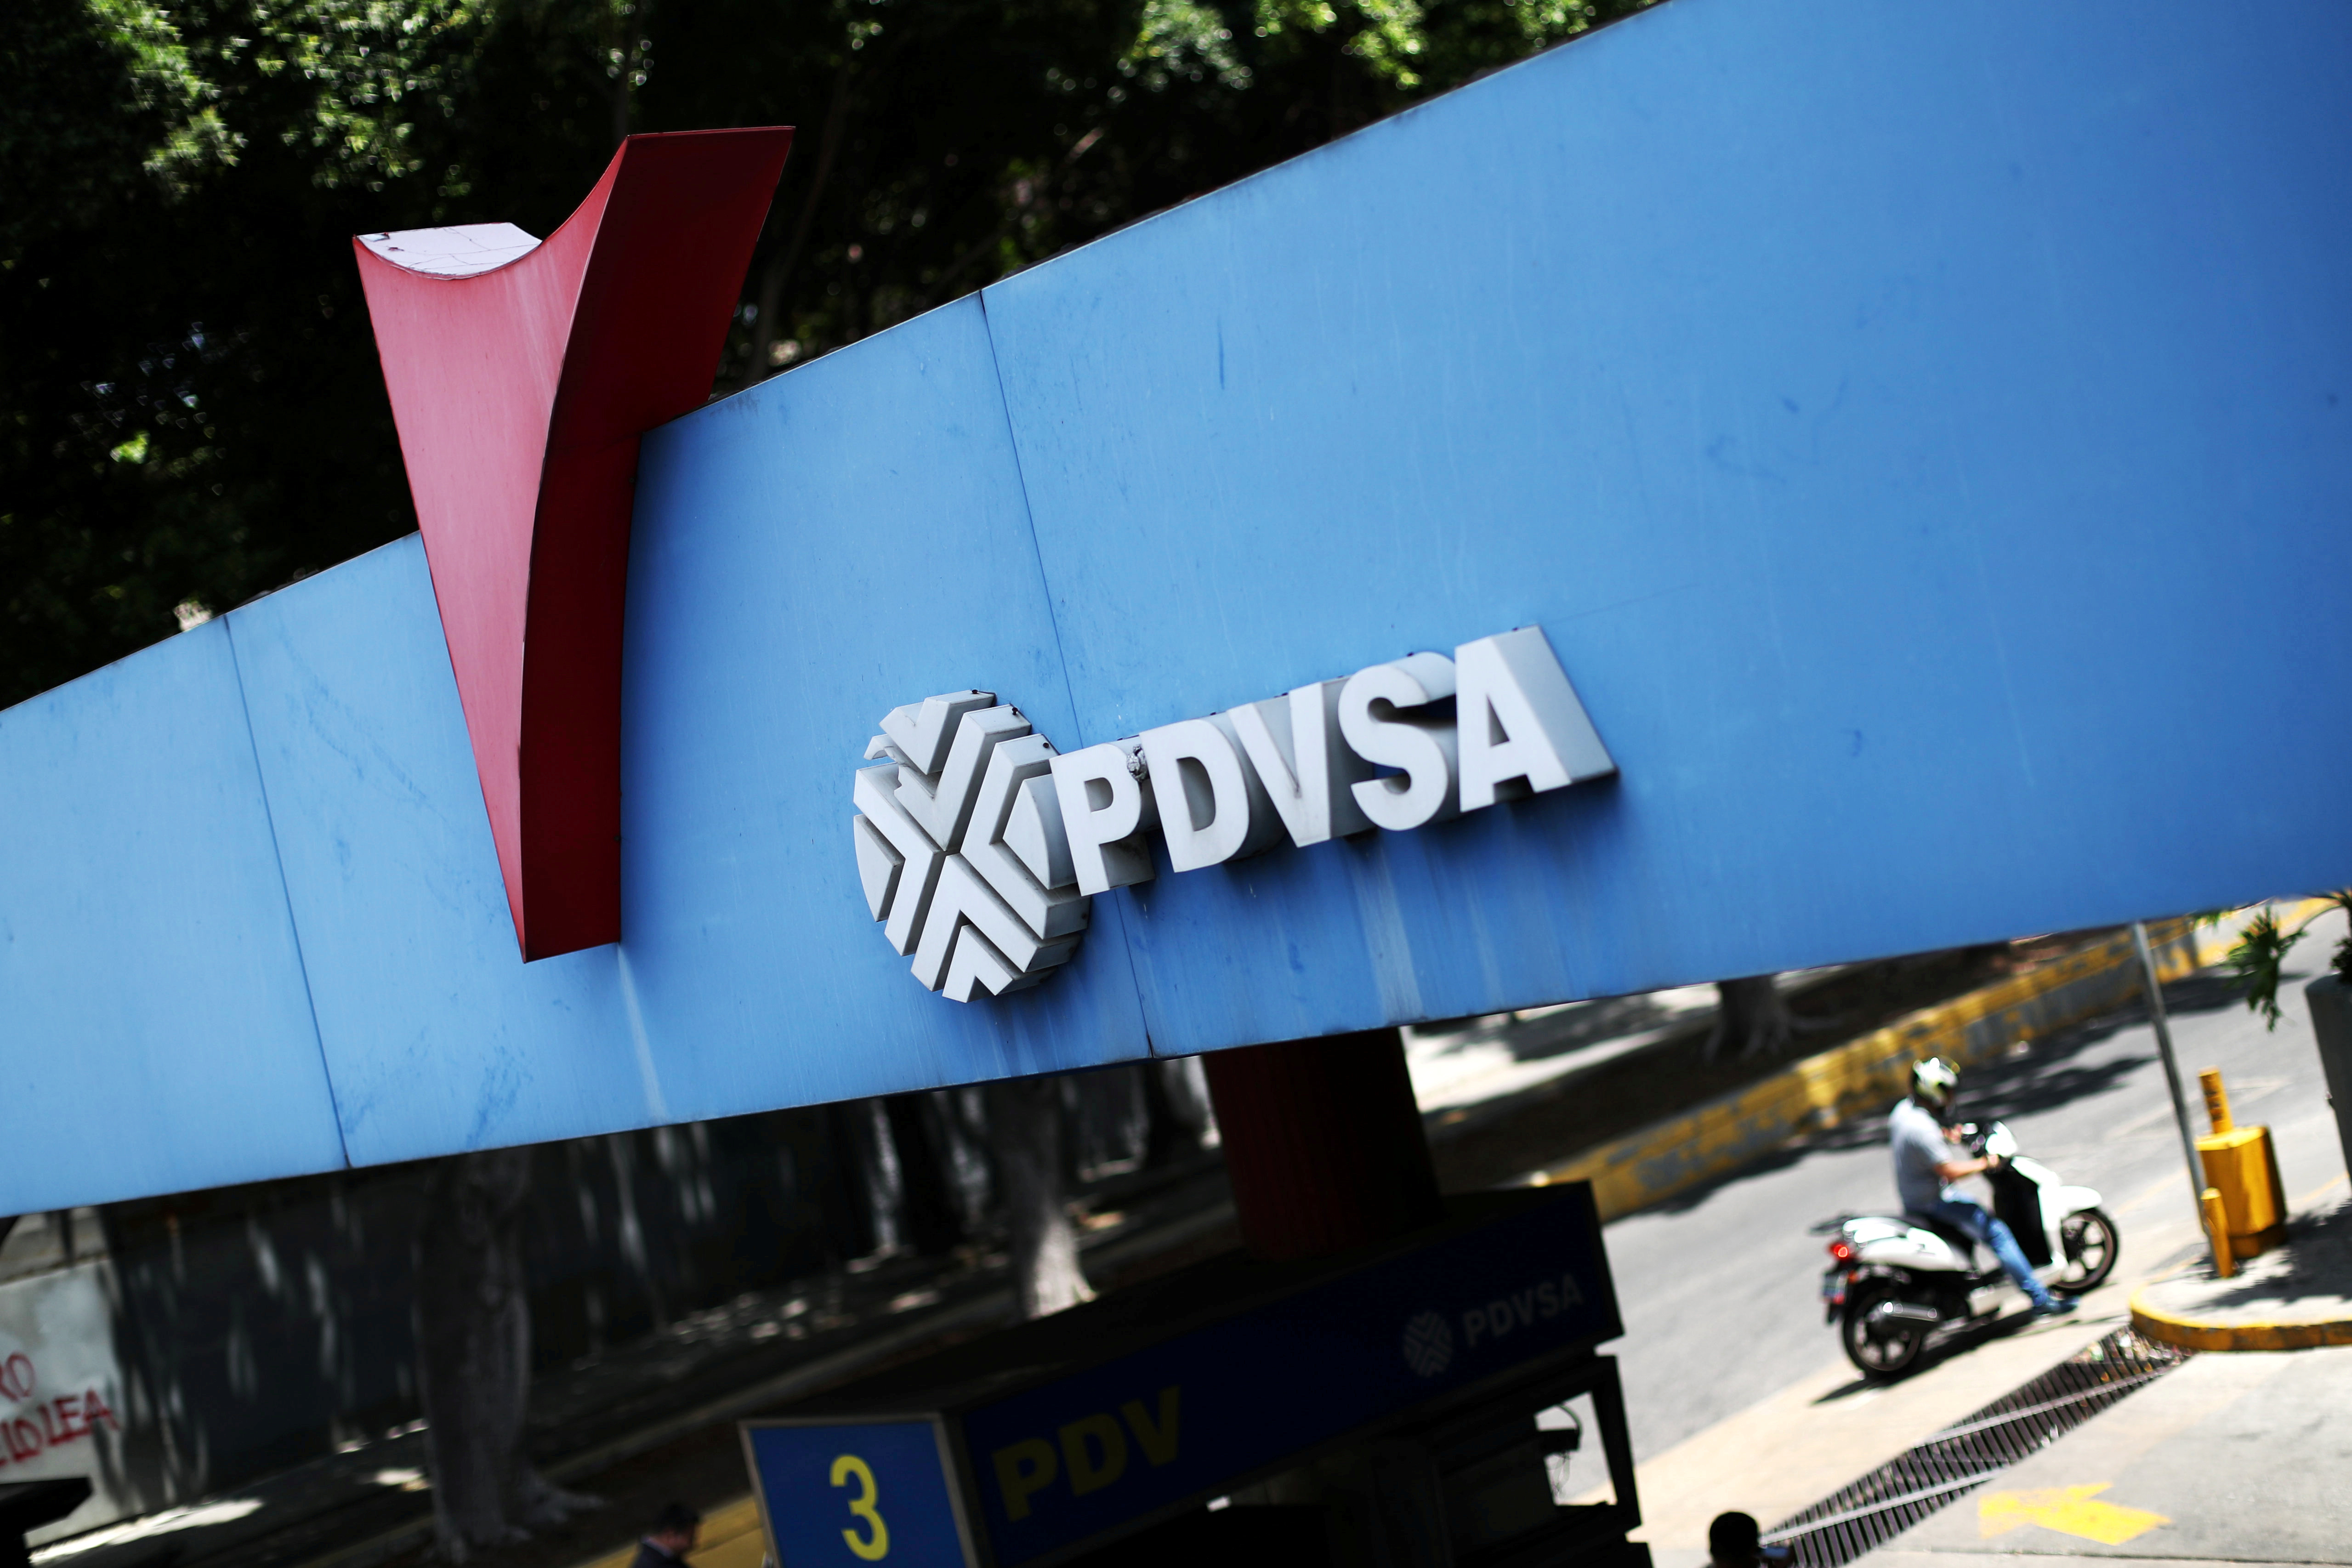 A state oil company PDVSA's logo is seen at a gas station in Caracas, Venezuela May 17, 2019. REUTERS/Ivan Alvarado/File Photo